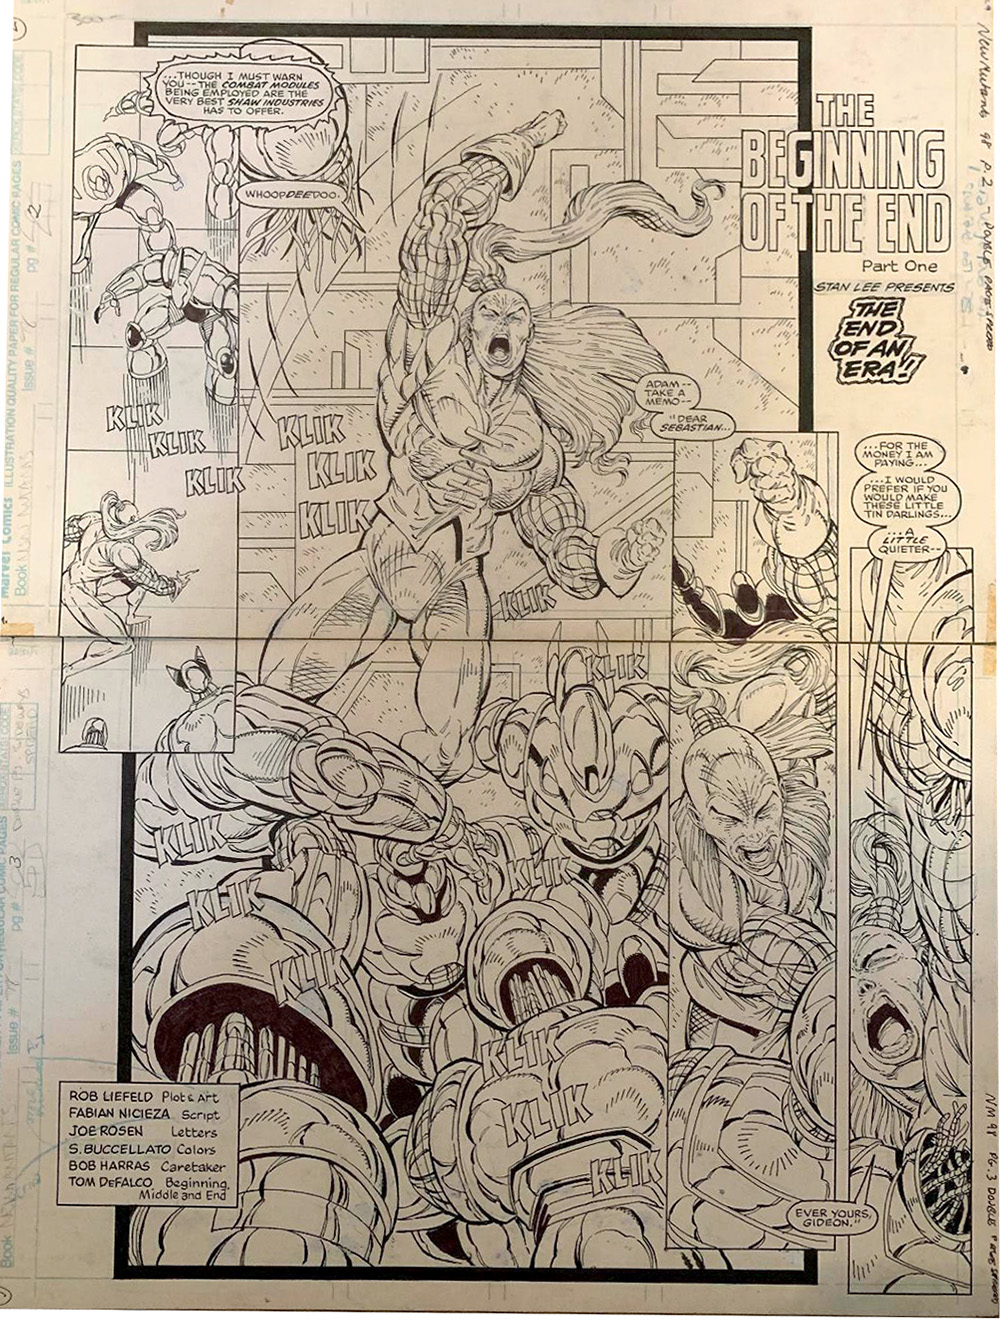 rob-liefeld-original-comic-art